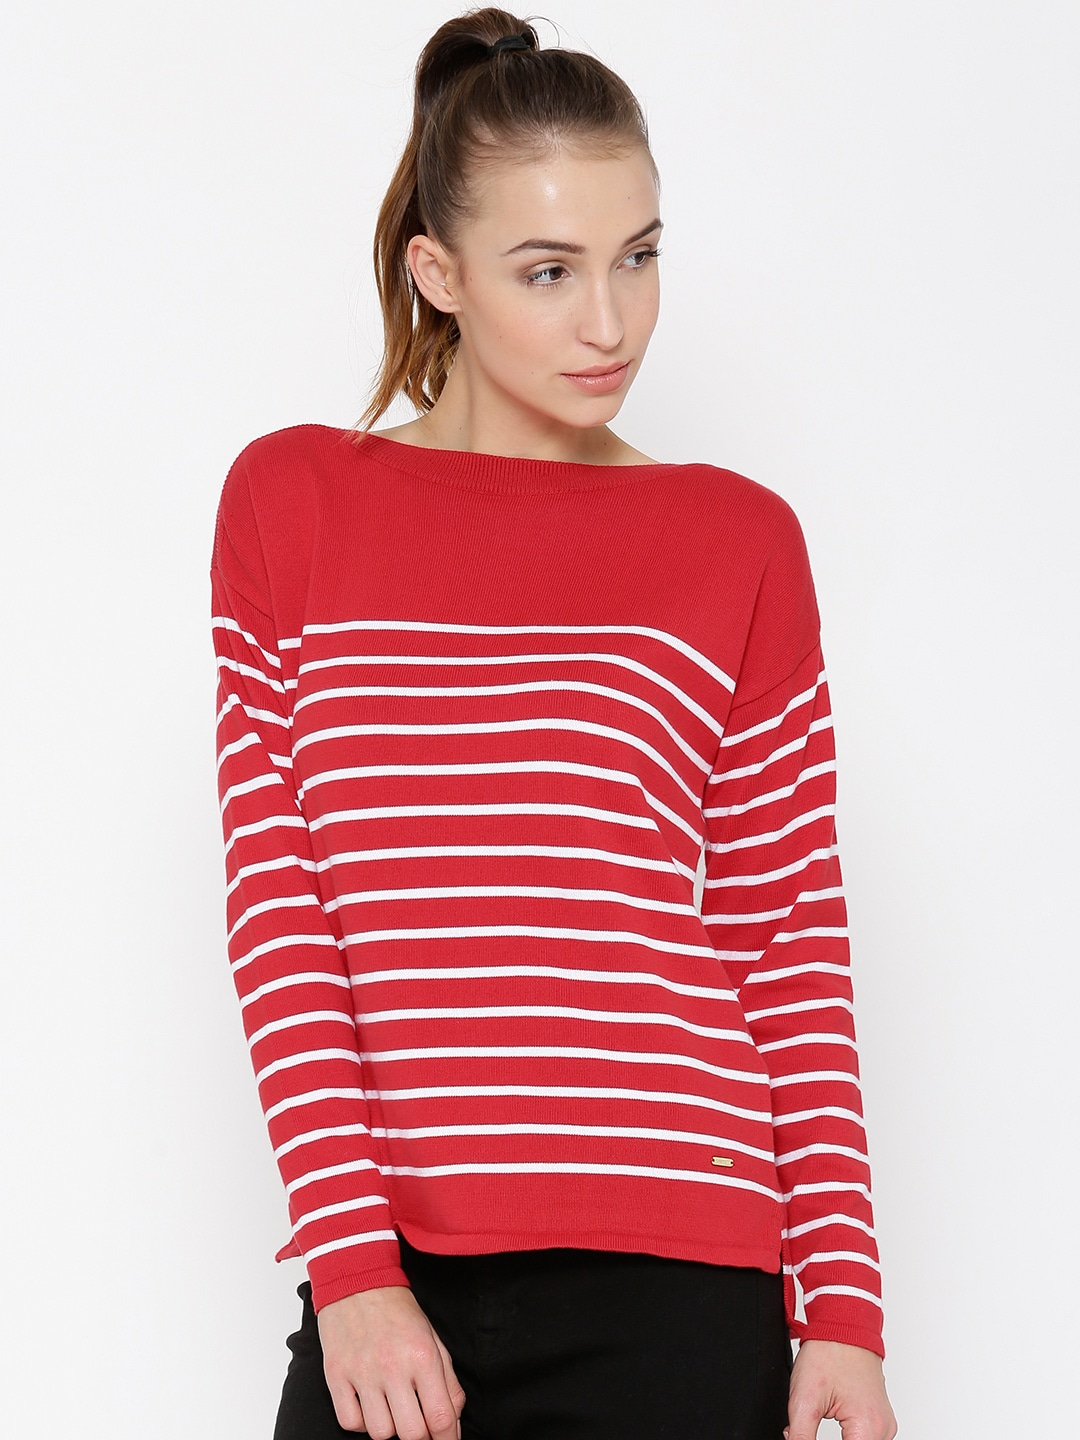 Red and White Striped Sweater Women | Dress images